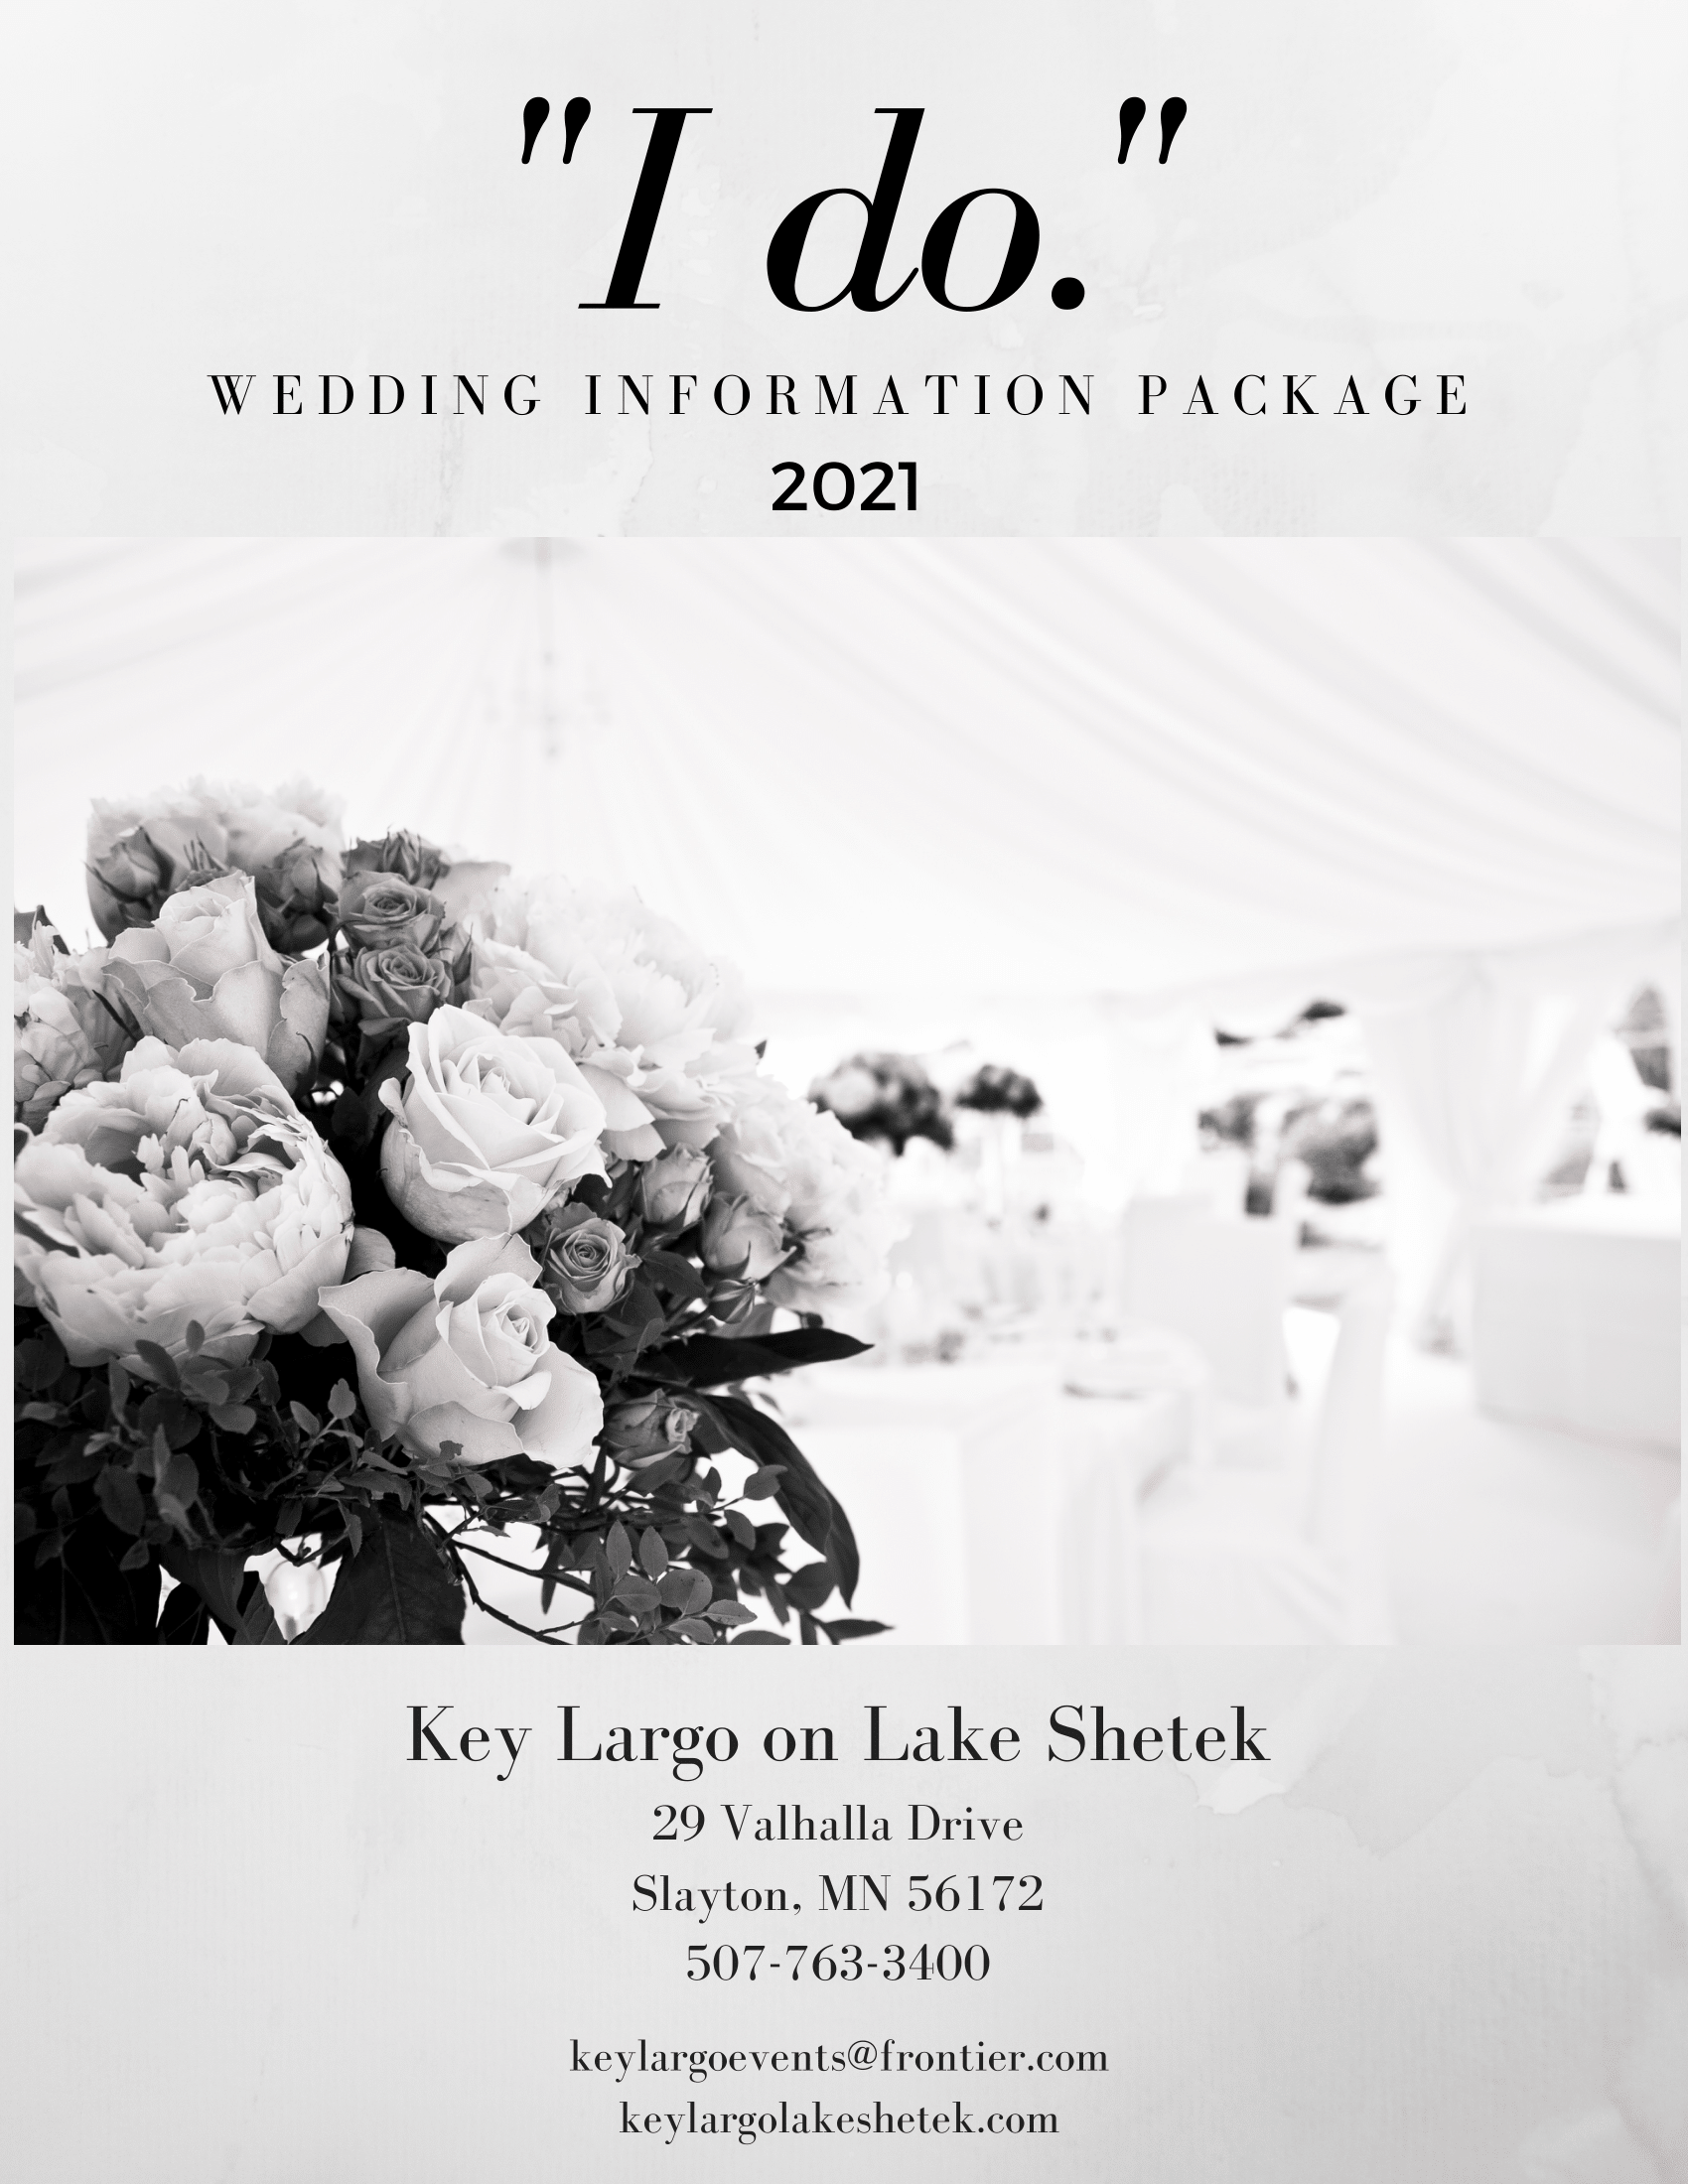 """i do."" wedding information package 2021. Key largo on lake shetek. 31 Valhalla Dr. Slayton MN 56172. 507-763-3400. keylargoevents@frontier.com. keylargolakeshetek.com"